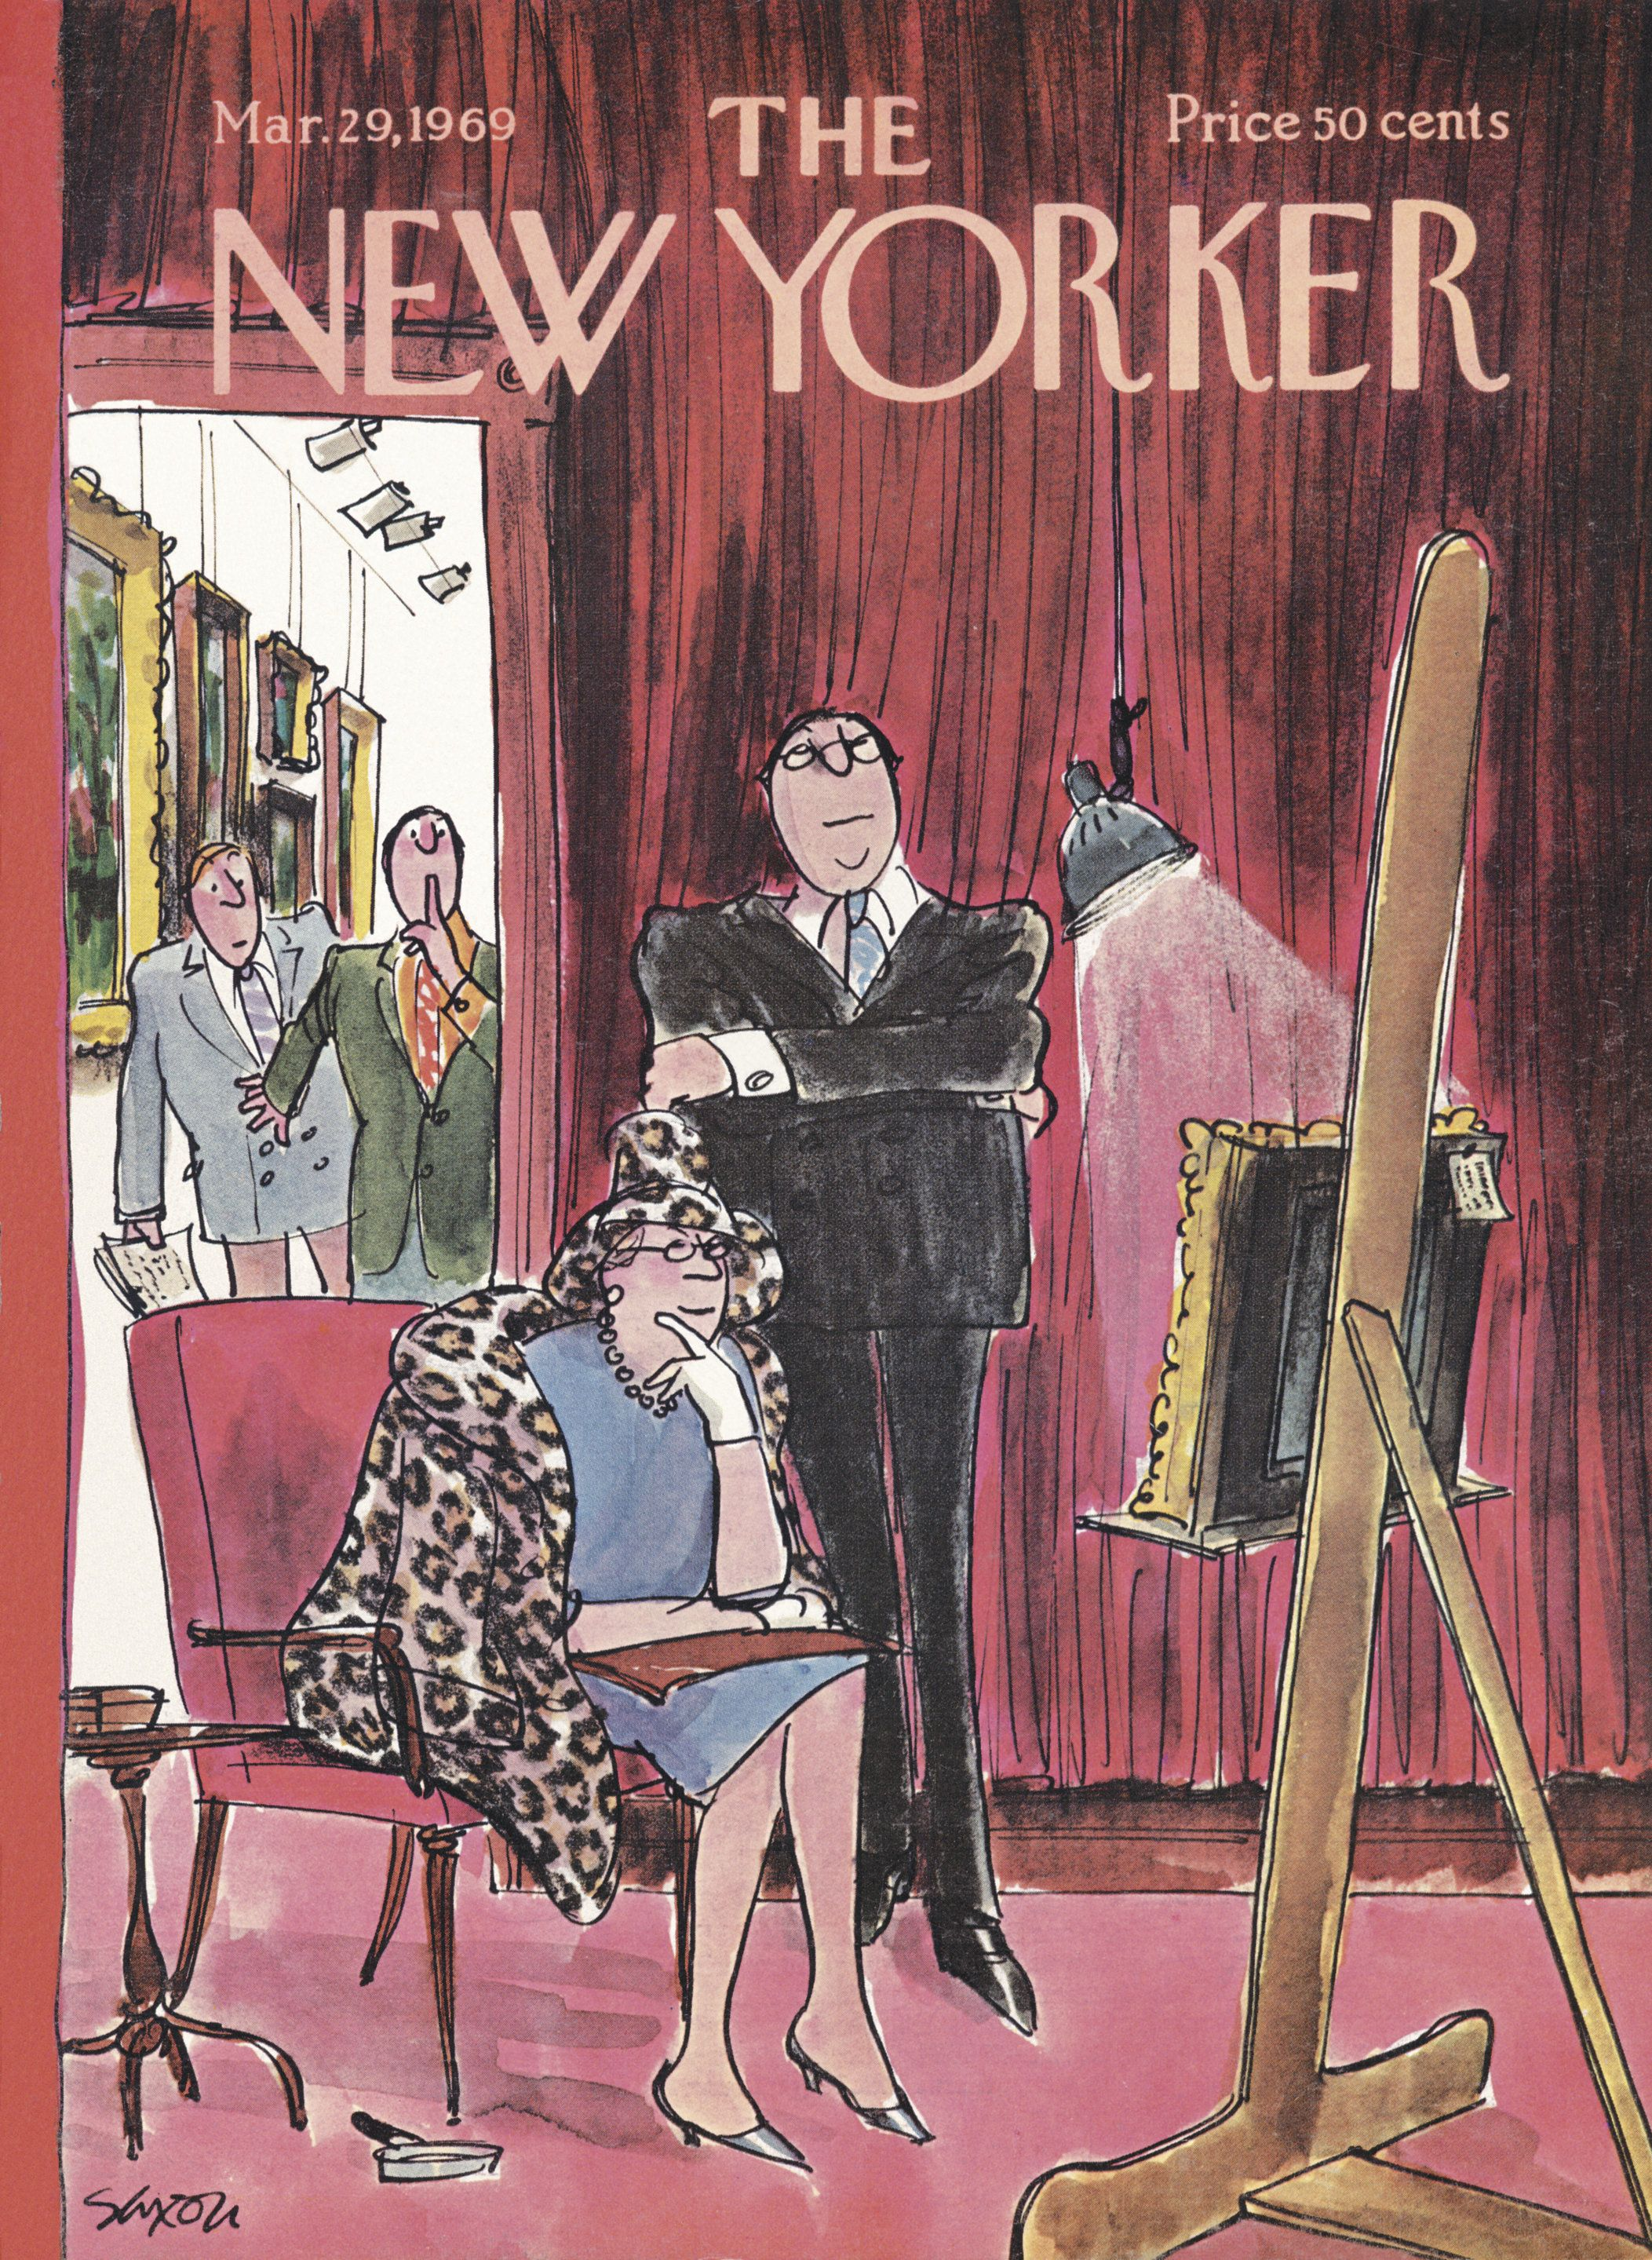 2b025a860 The New Yorker - Saturday, March 29, 1969 - Issue # 2302 - Vol. 45 - N° 6 -  Cover by : Charles Saxon